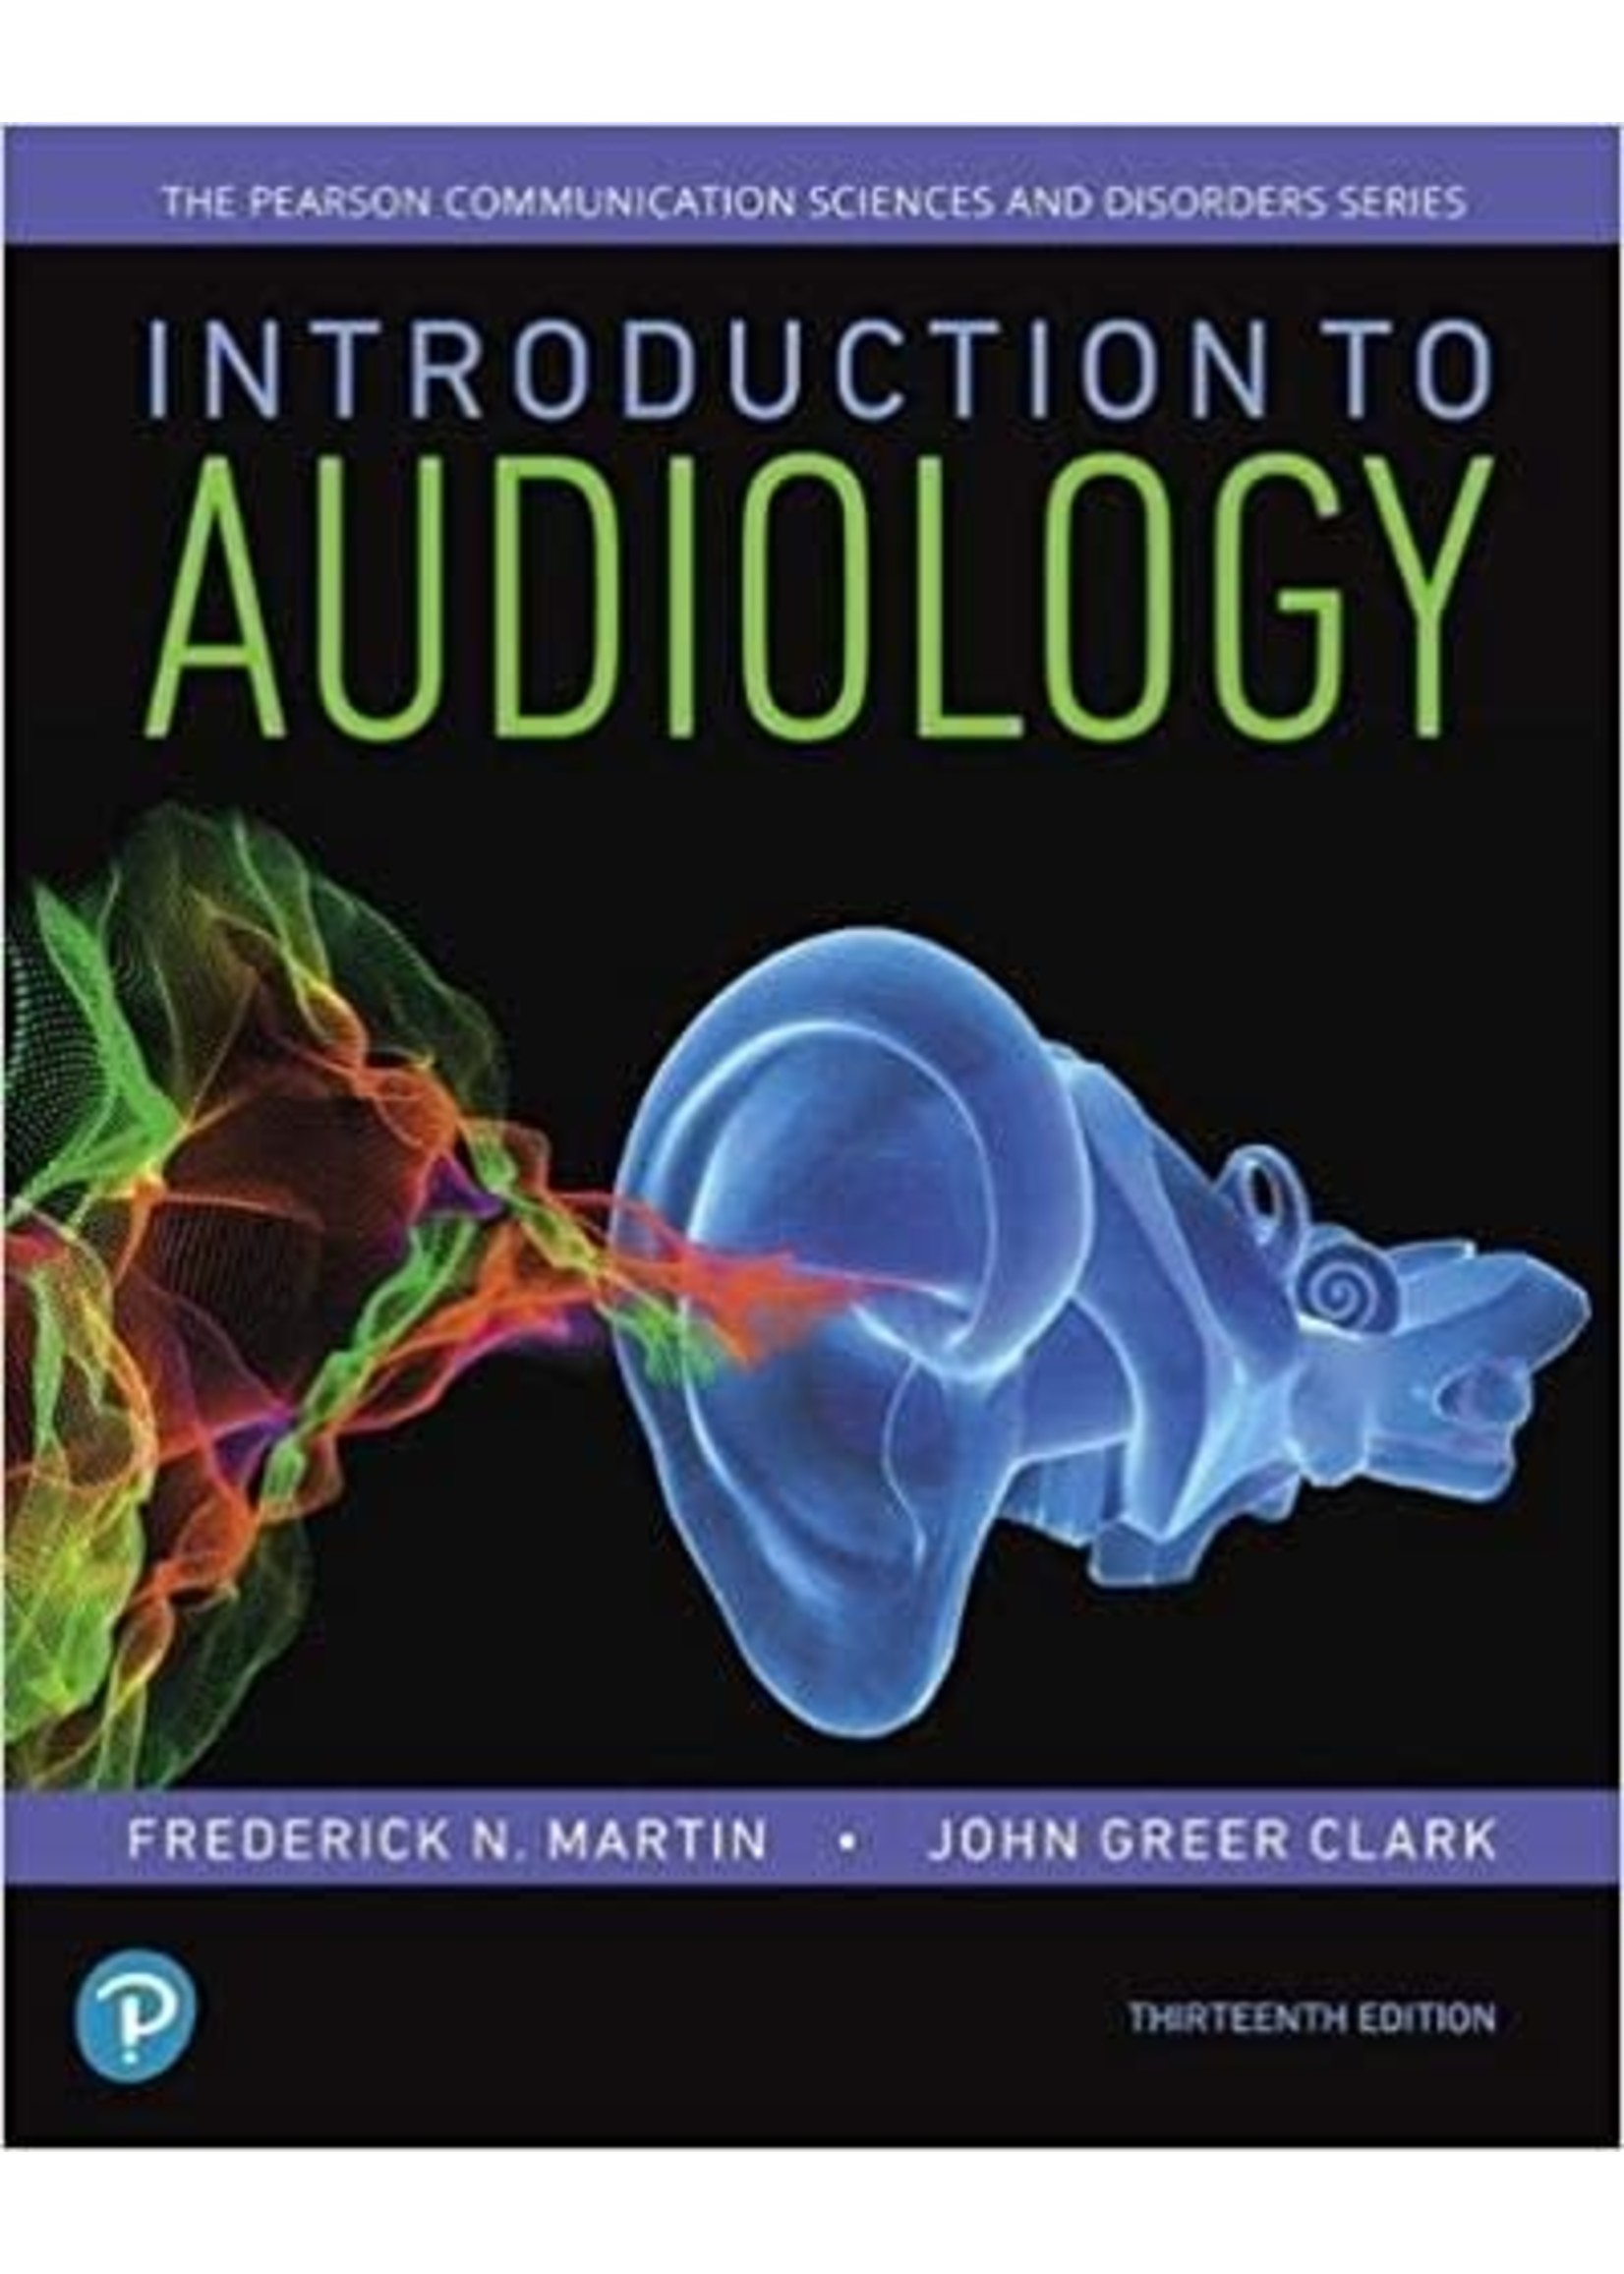 CSD475 INTRODUCTION TO AUDIOLOGY